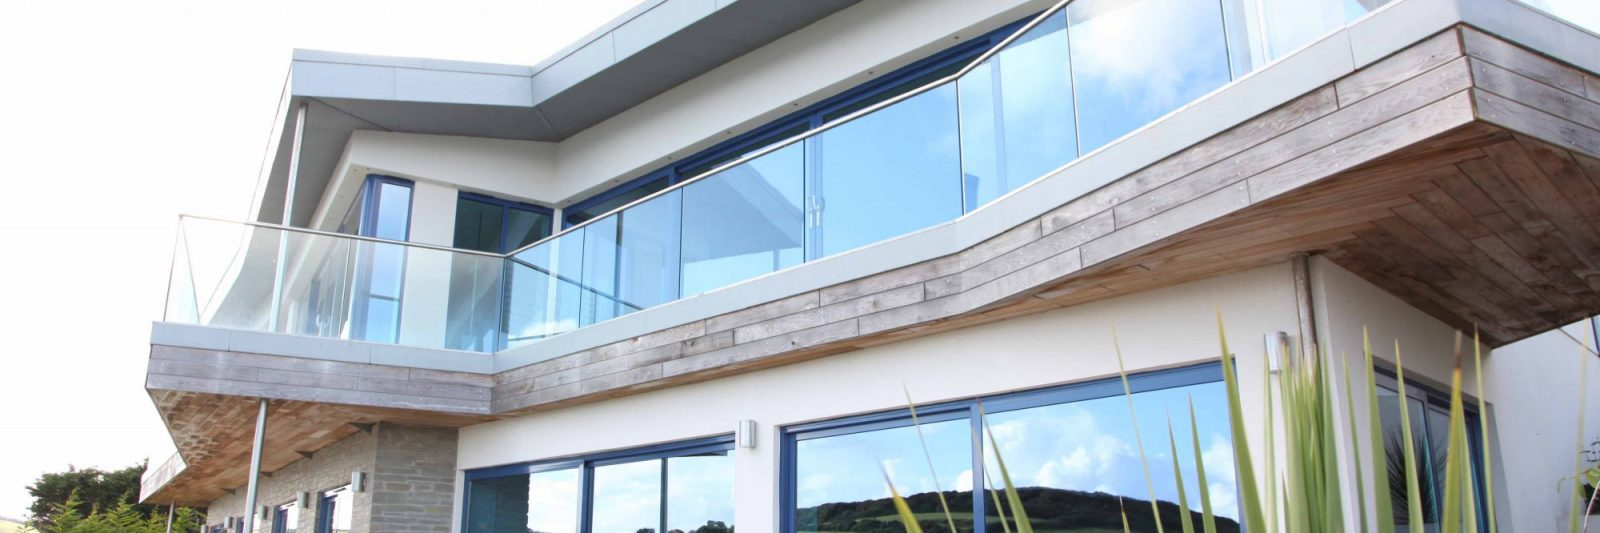 Stephens and Stephens Development Blue Point Gorran Haven Cornwall banner exterior 2000x1350